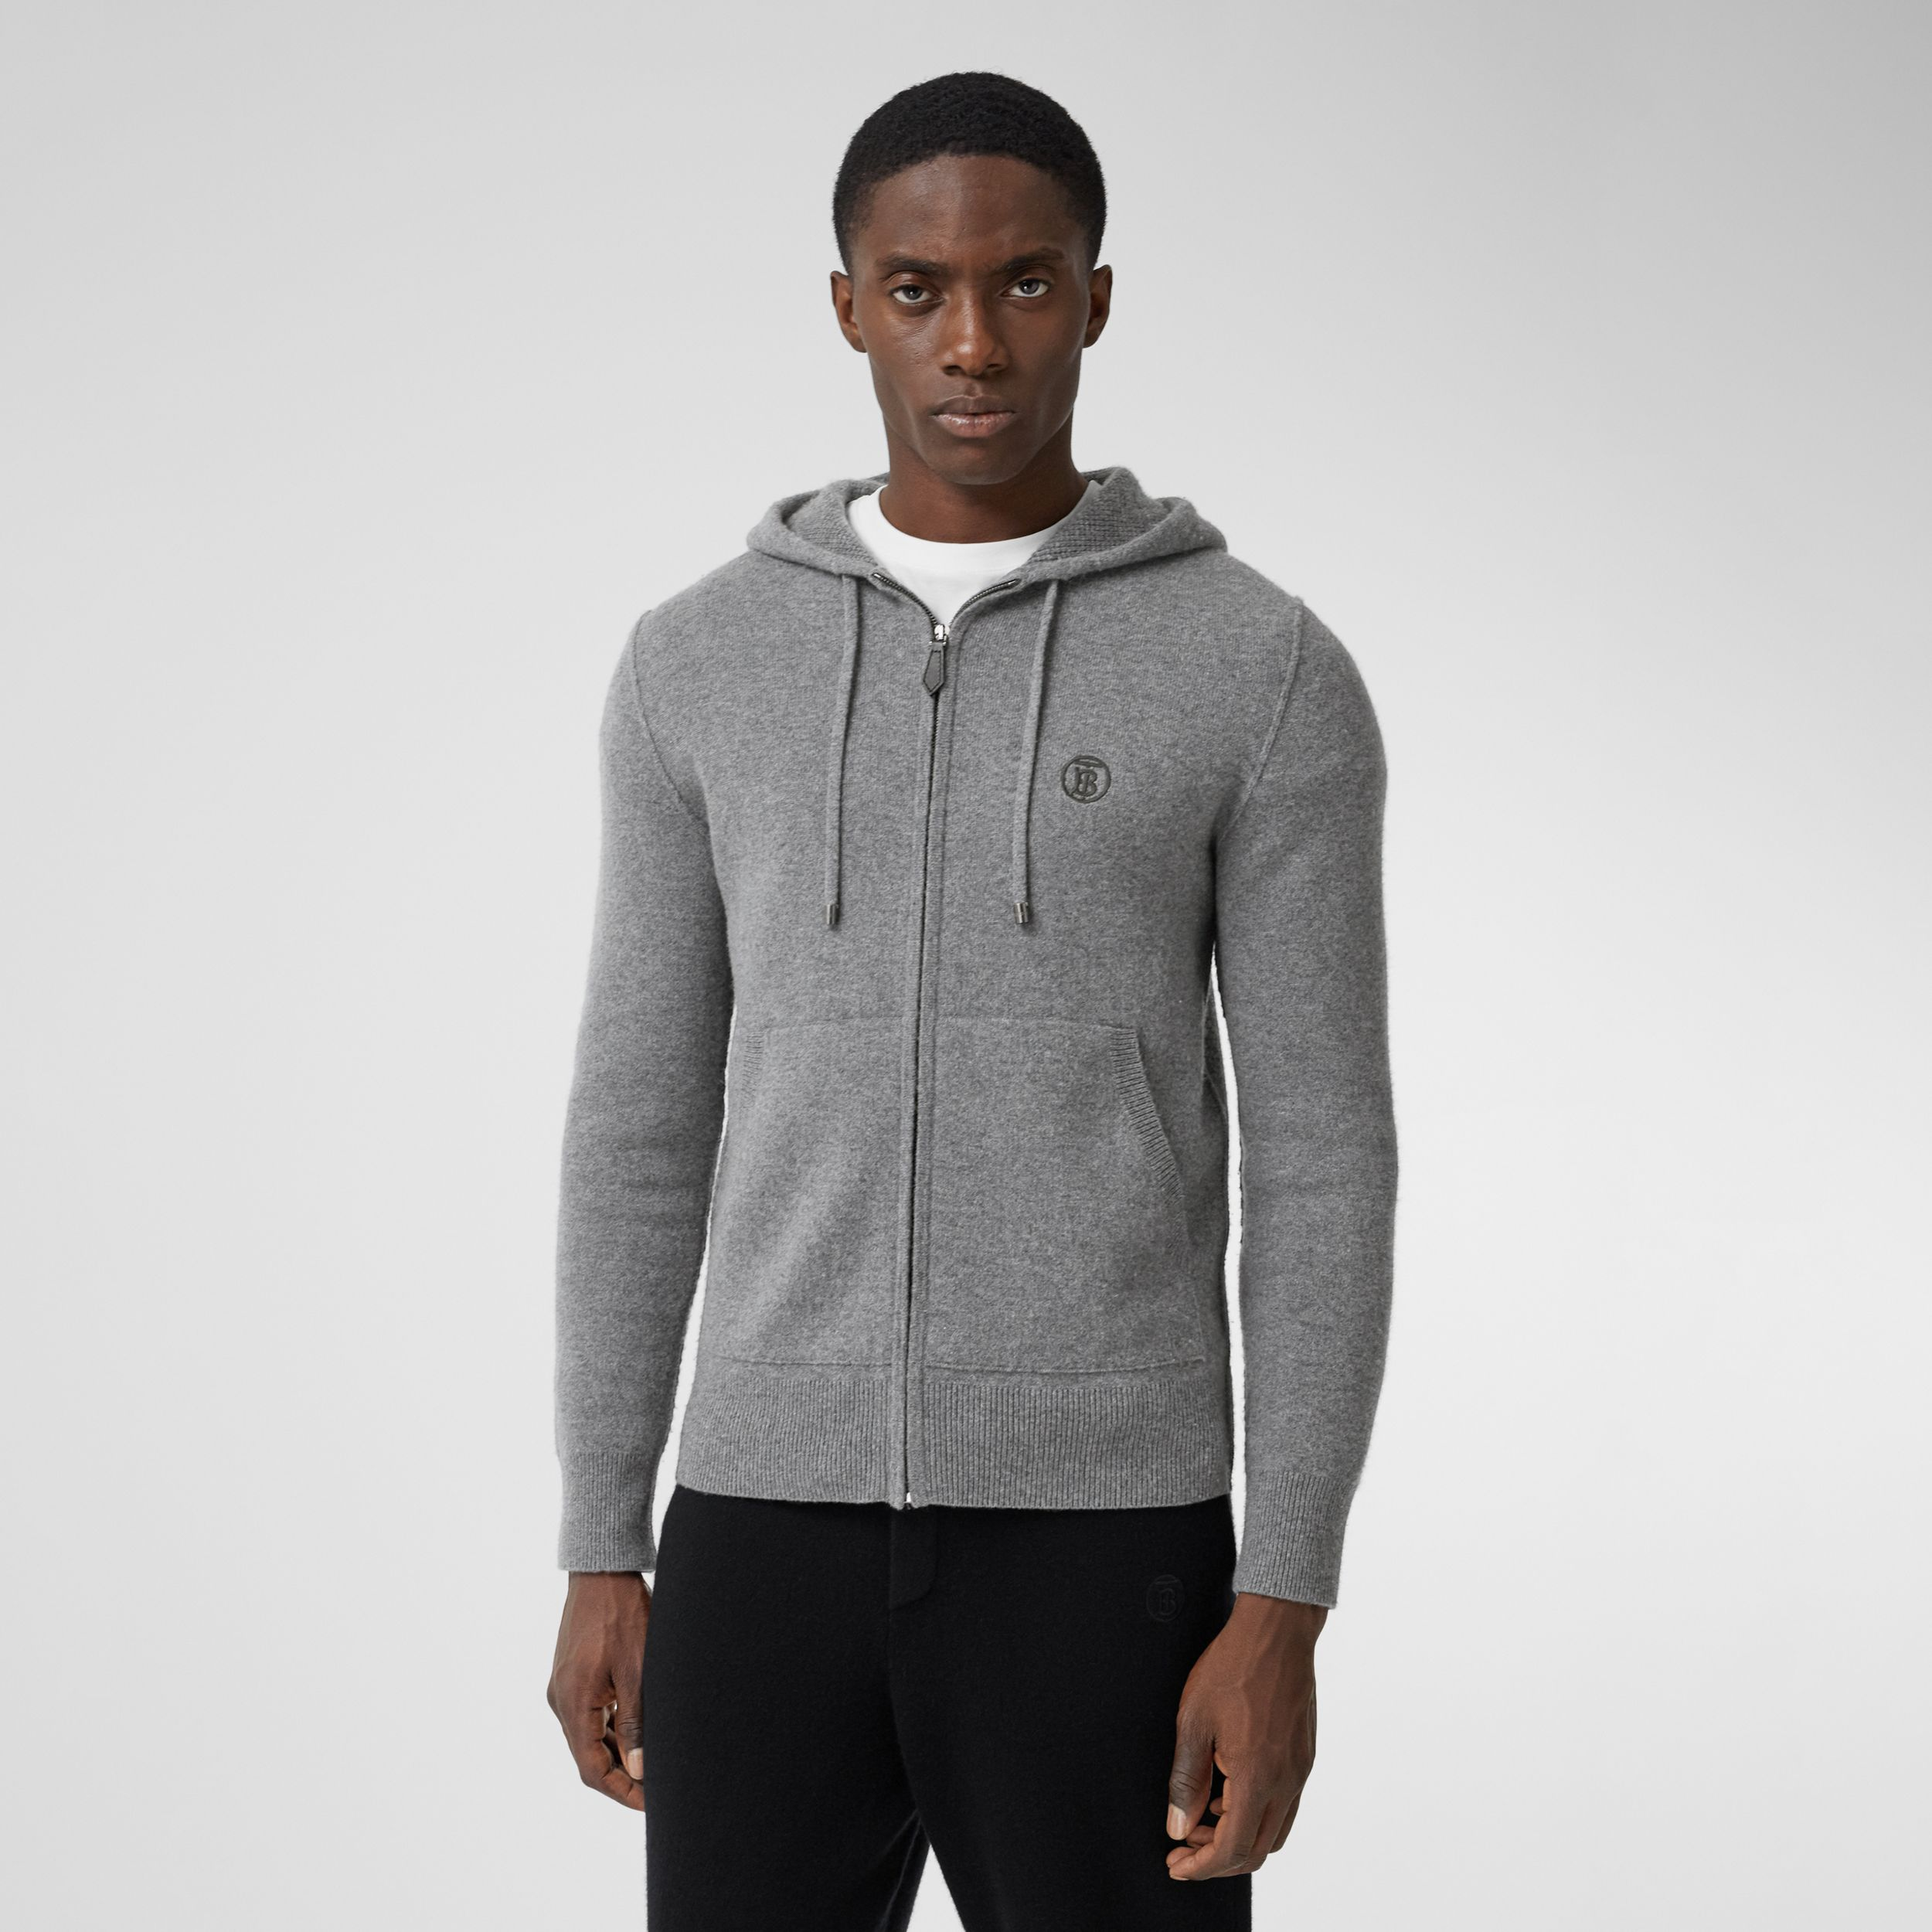 Monogram Motif Cashmere Blend Hooded Top in Mid Grey Melange - Men | Burberry - 1